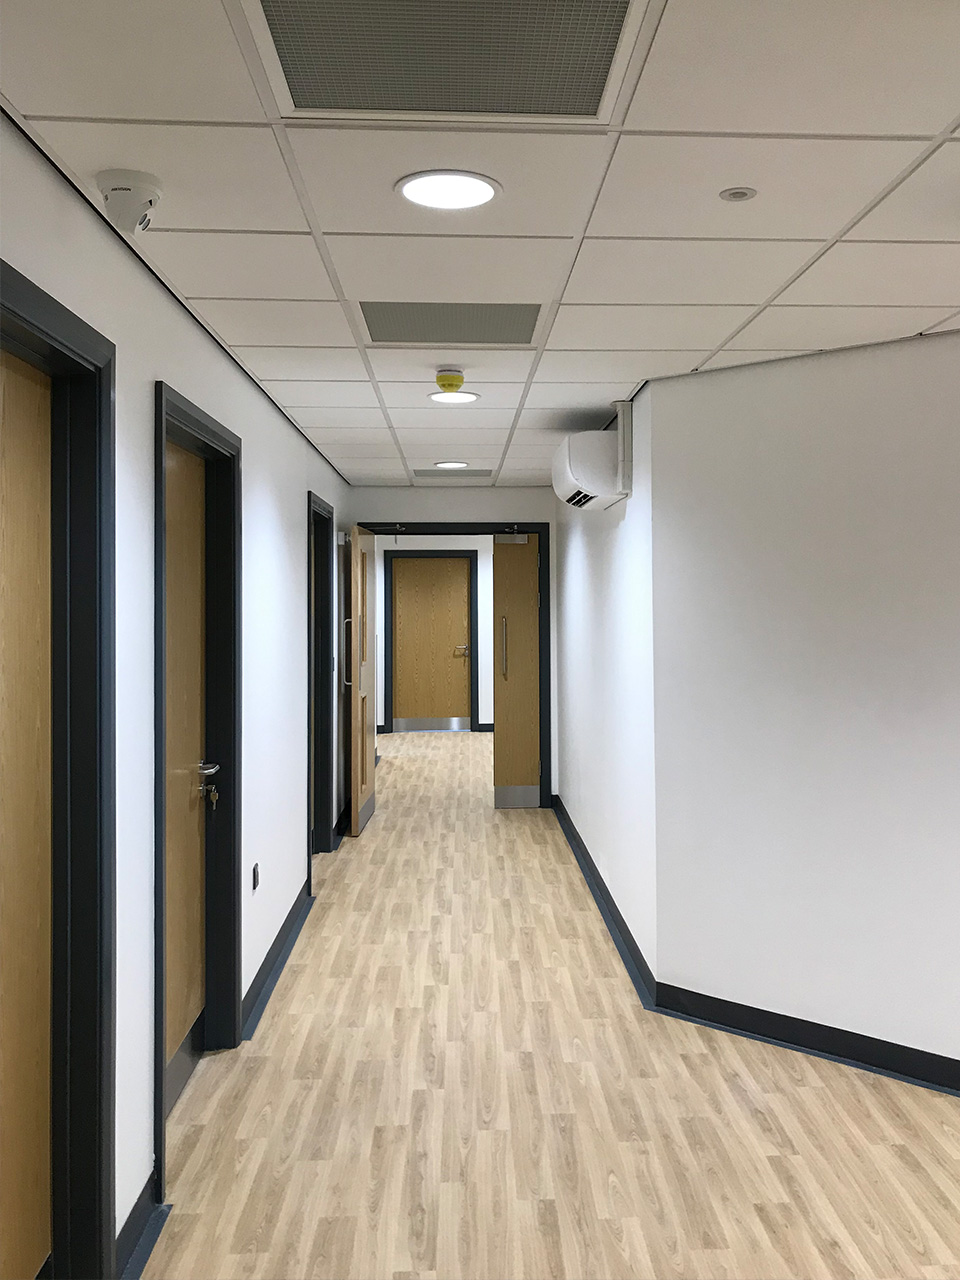 medical centre fit out and refurbishment including hygienic materials for infection prevention